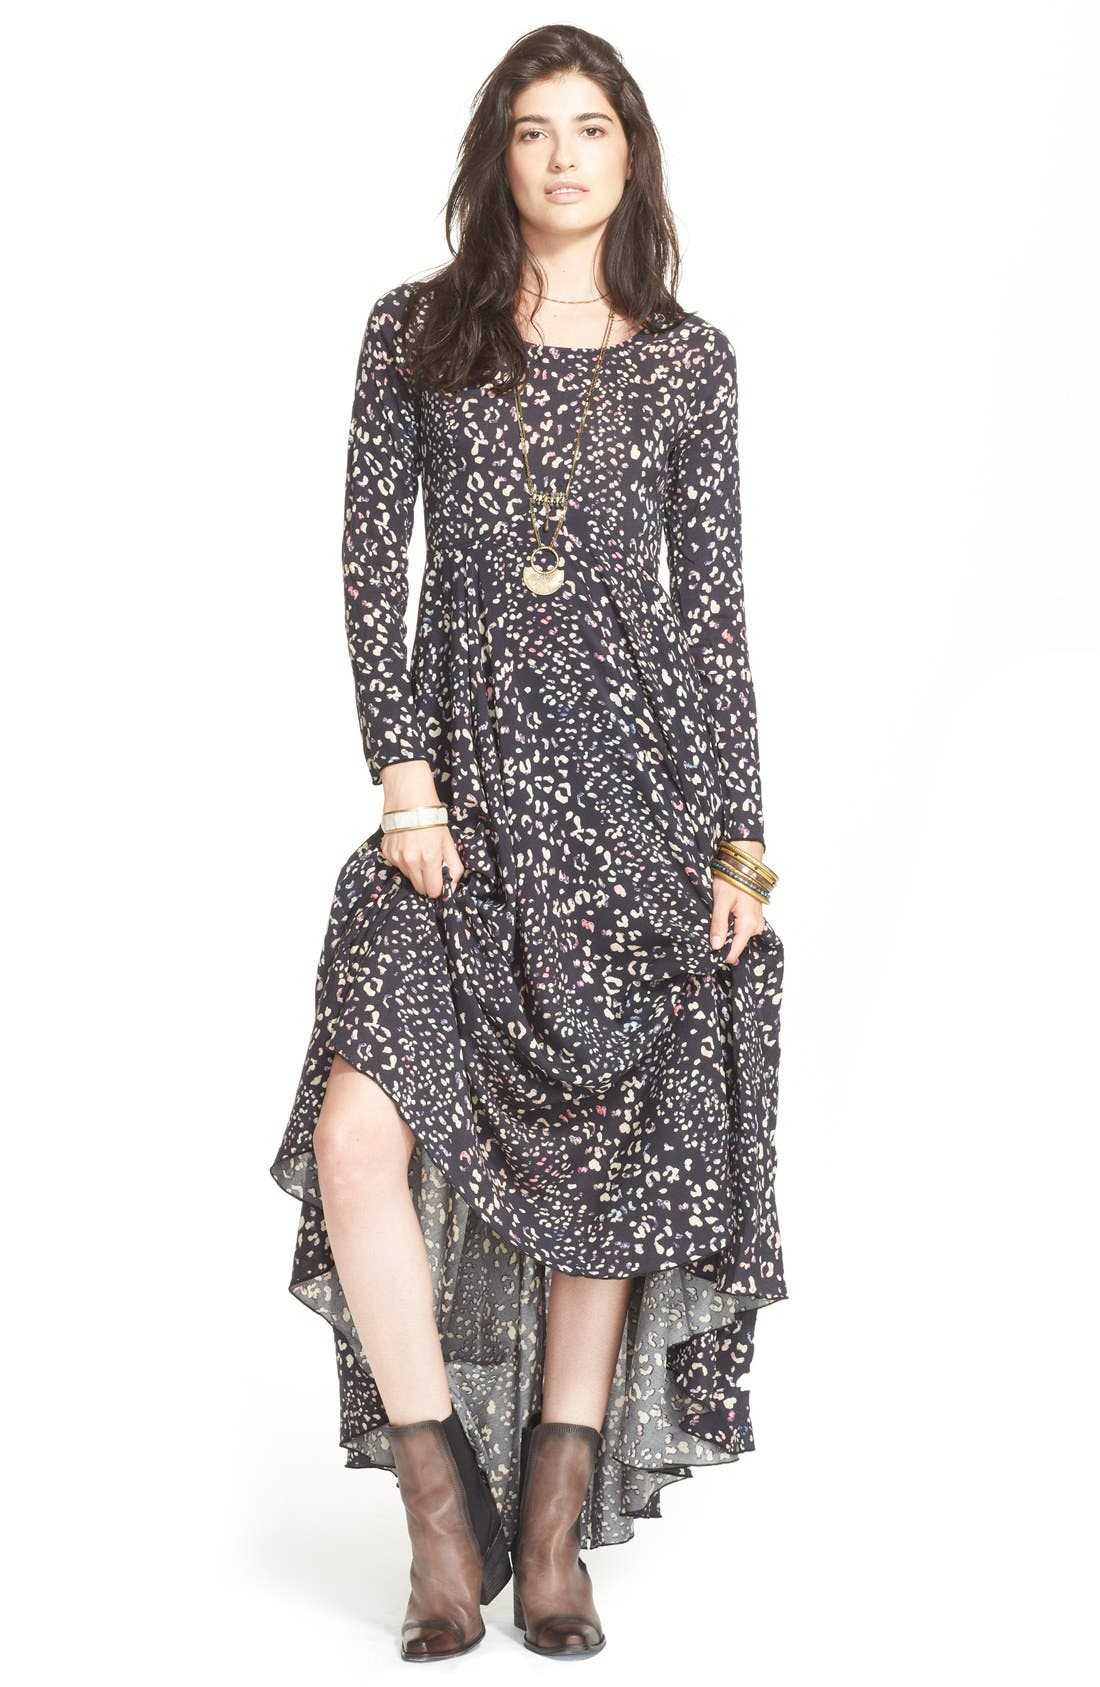 FREE PEOPLE, 'First Kiss' Maxi Dress, Main thumbnail 1, color, 001